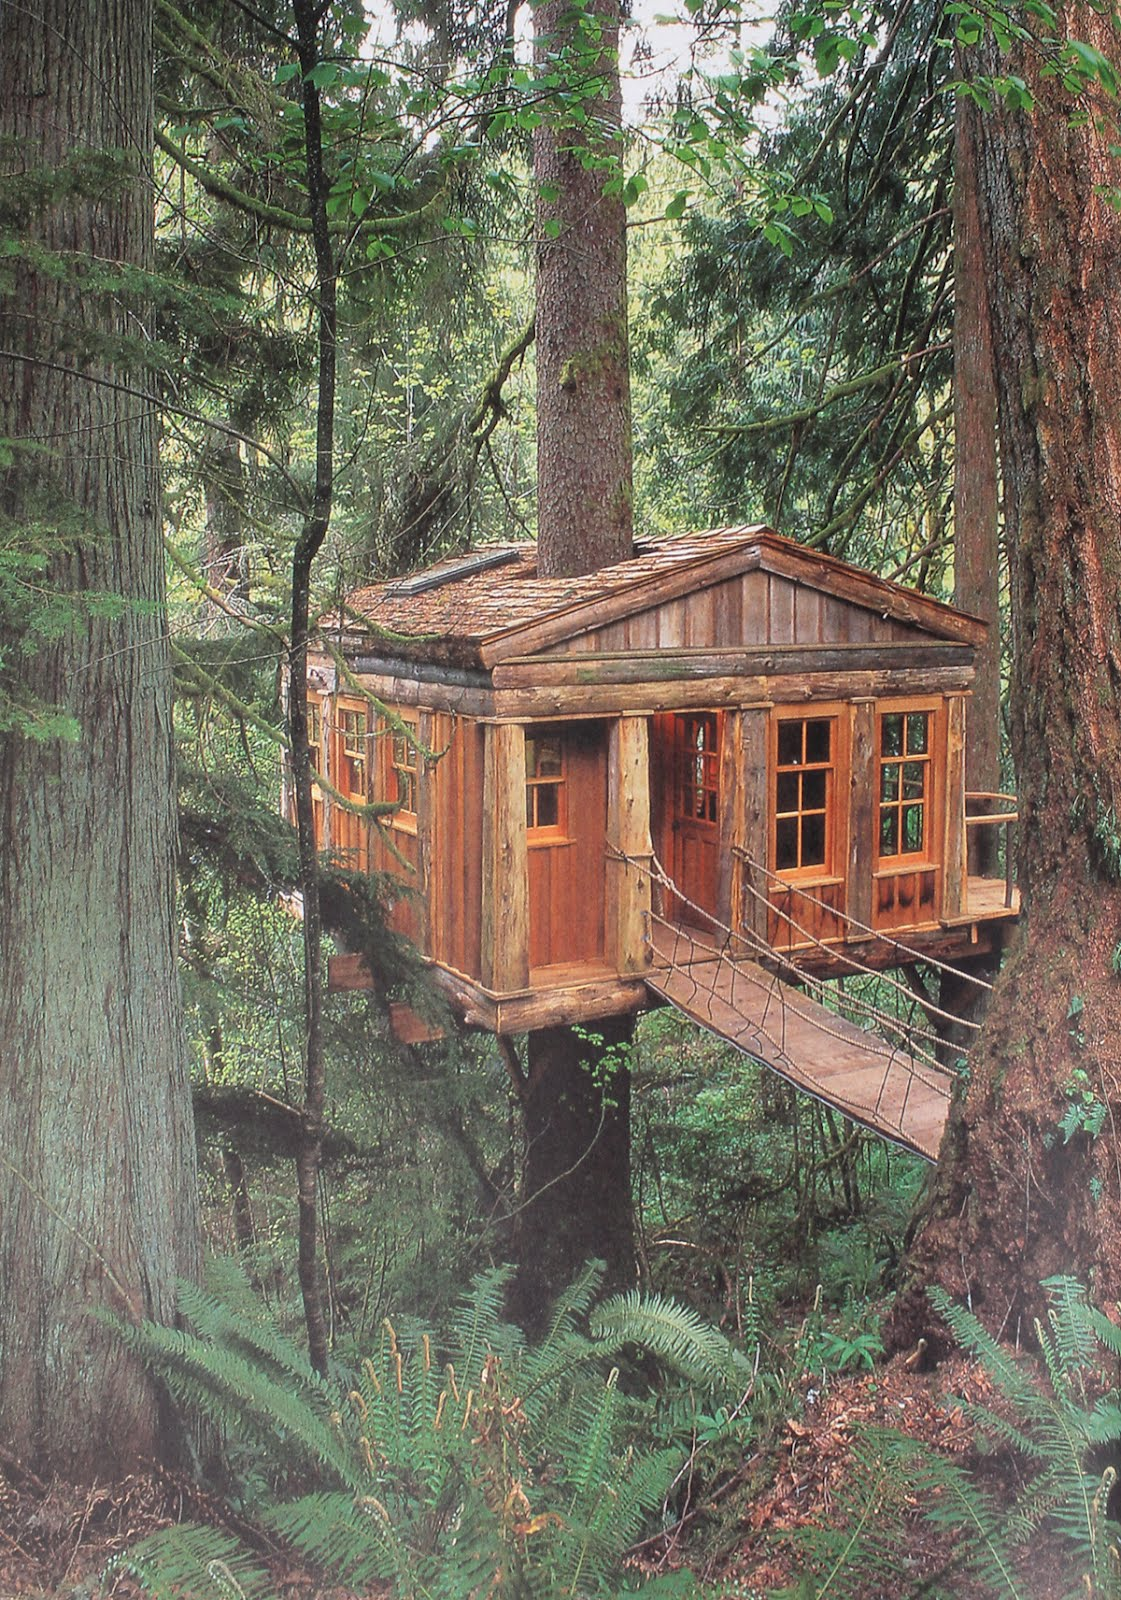 Terrierman's Daily Dose: A Cabin in the Woods